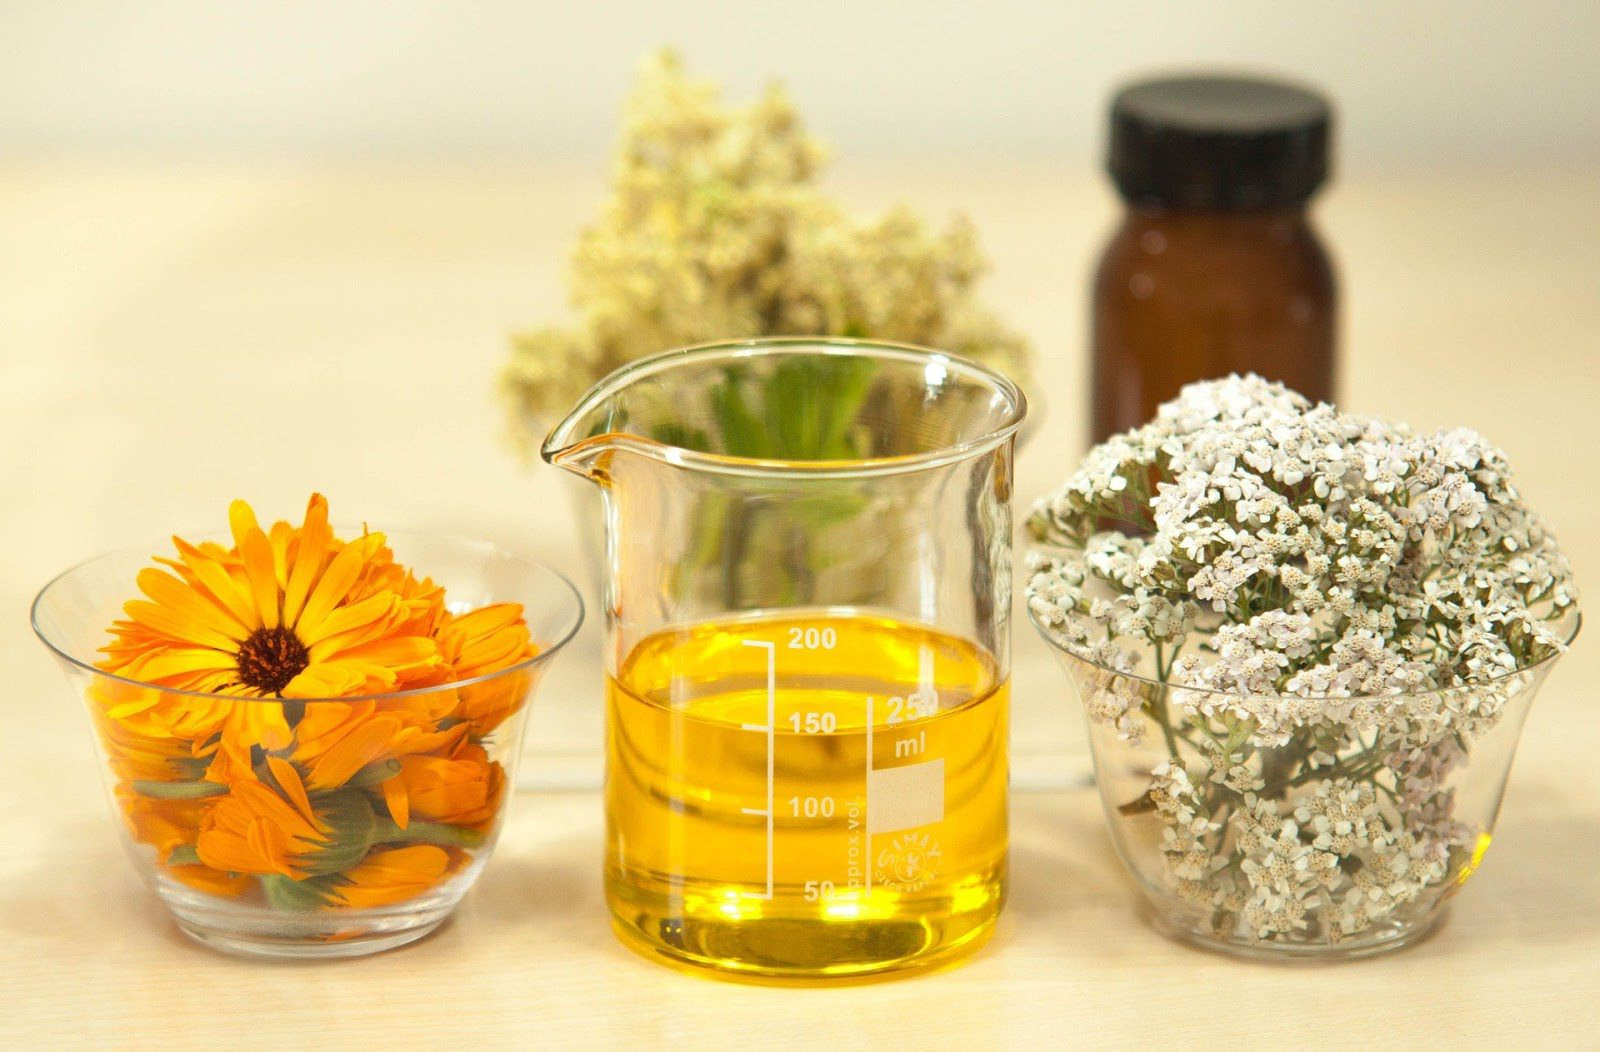 Carrier Oils: Finding the right carrier oil for your skin Natural Skincare Ingredients